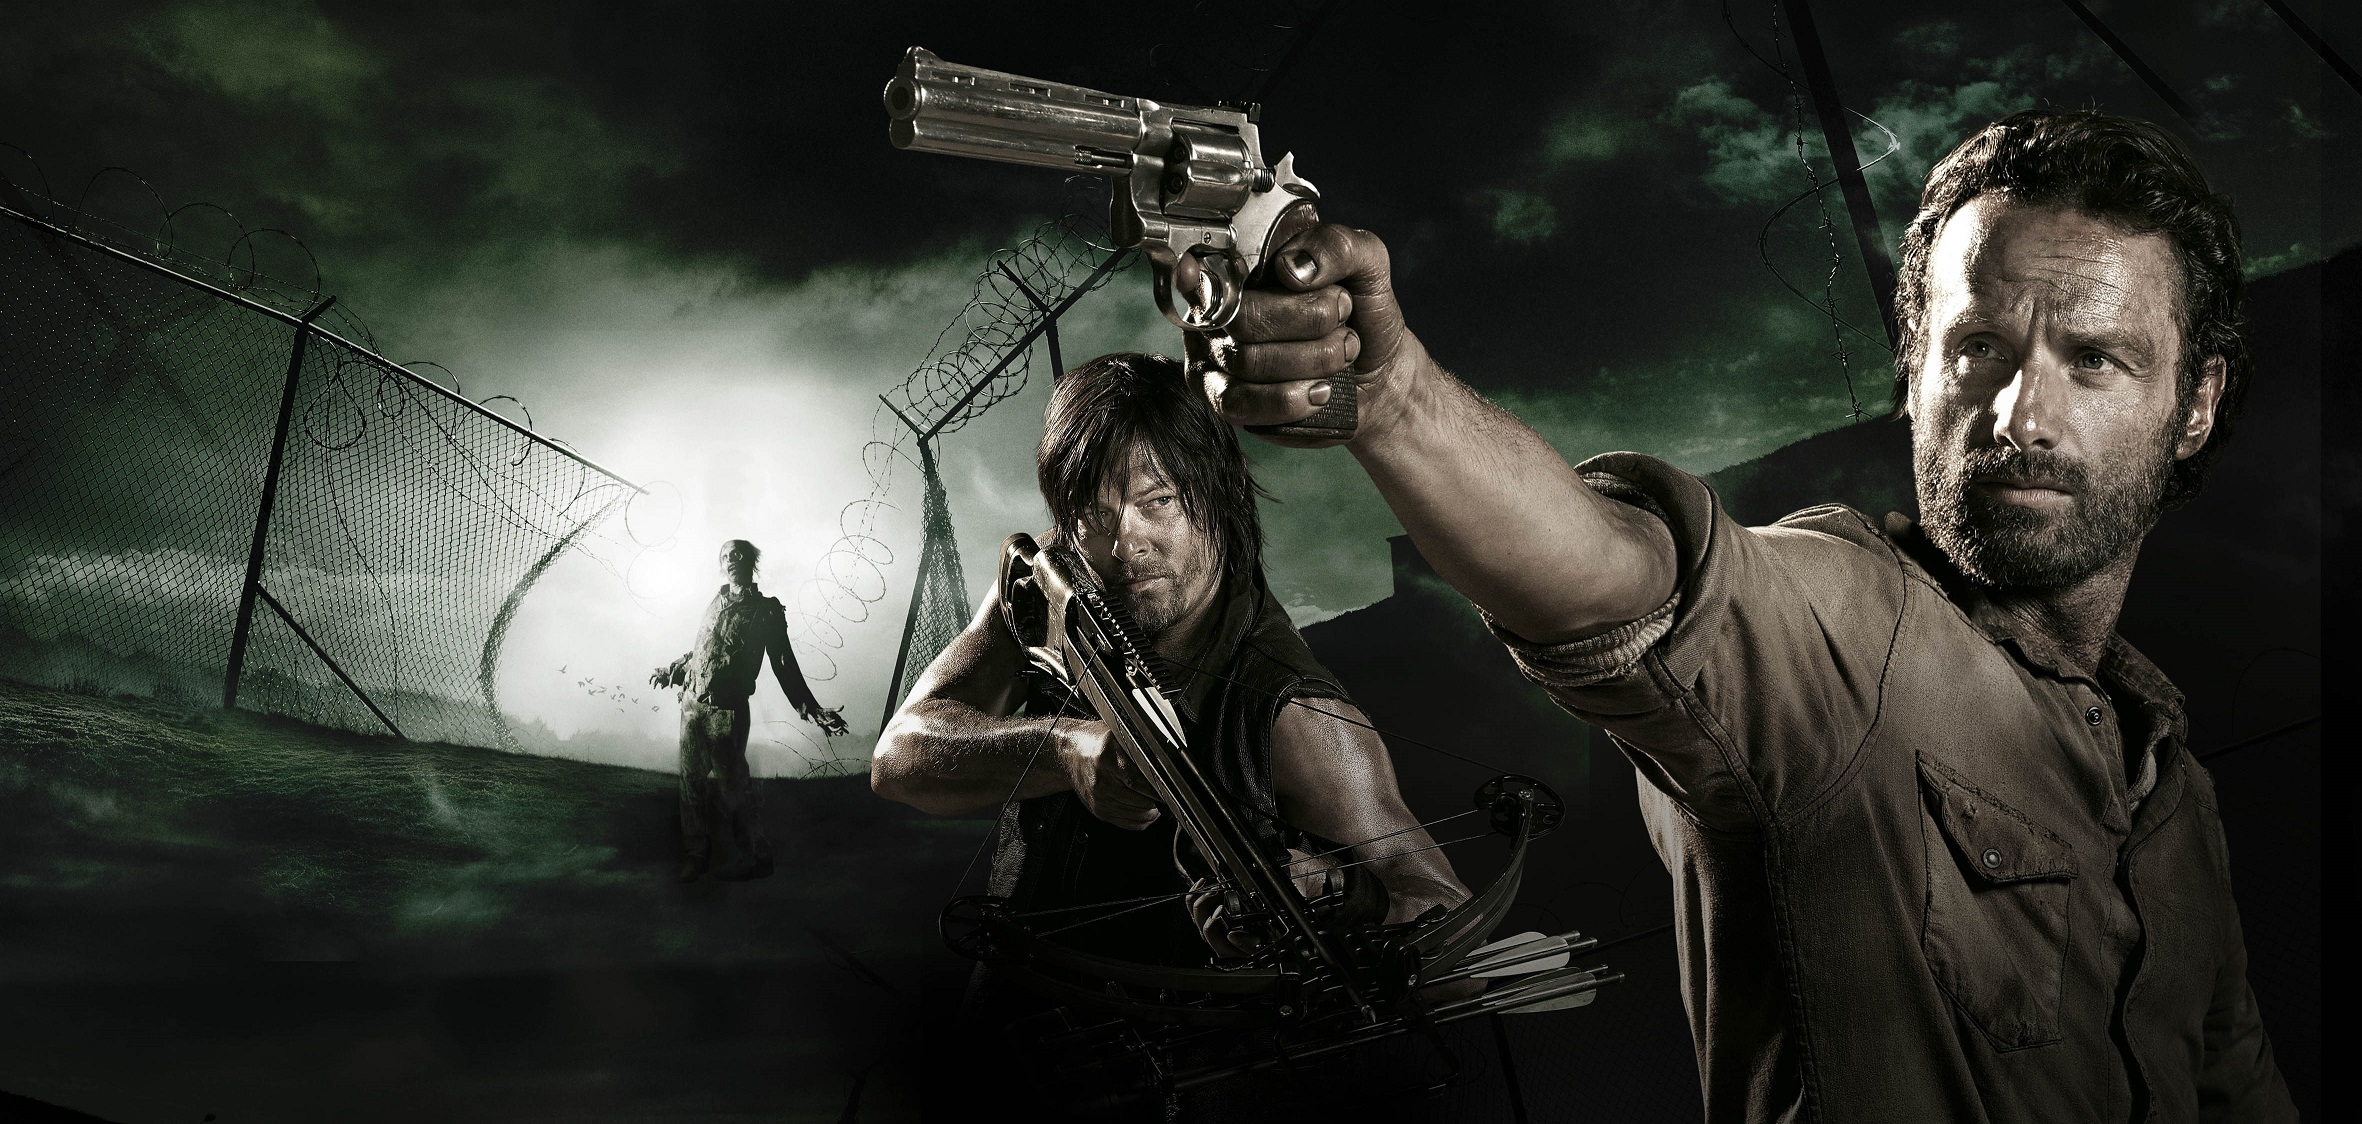 The Walking Dead-Official Poster Banner PROMO PHOTO-01ABRIL2014-01 (2)